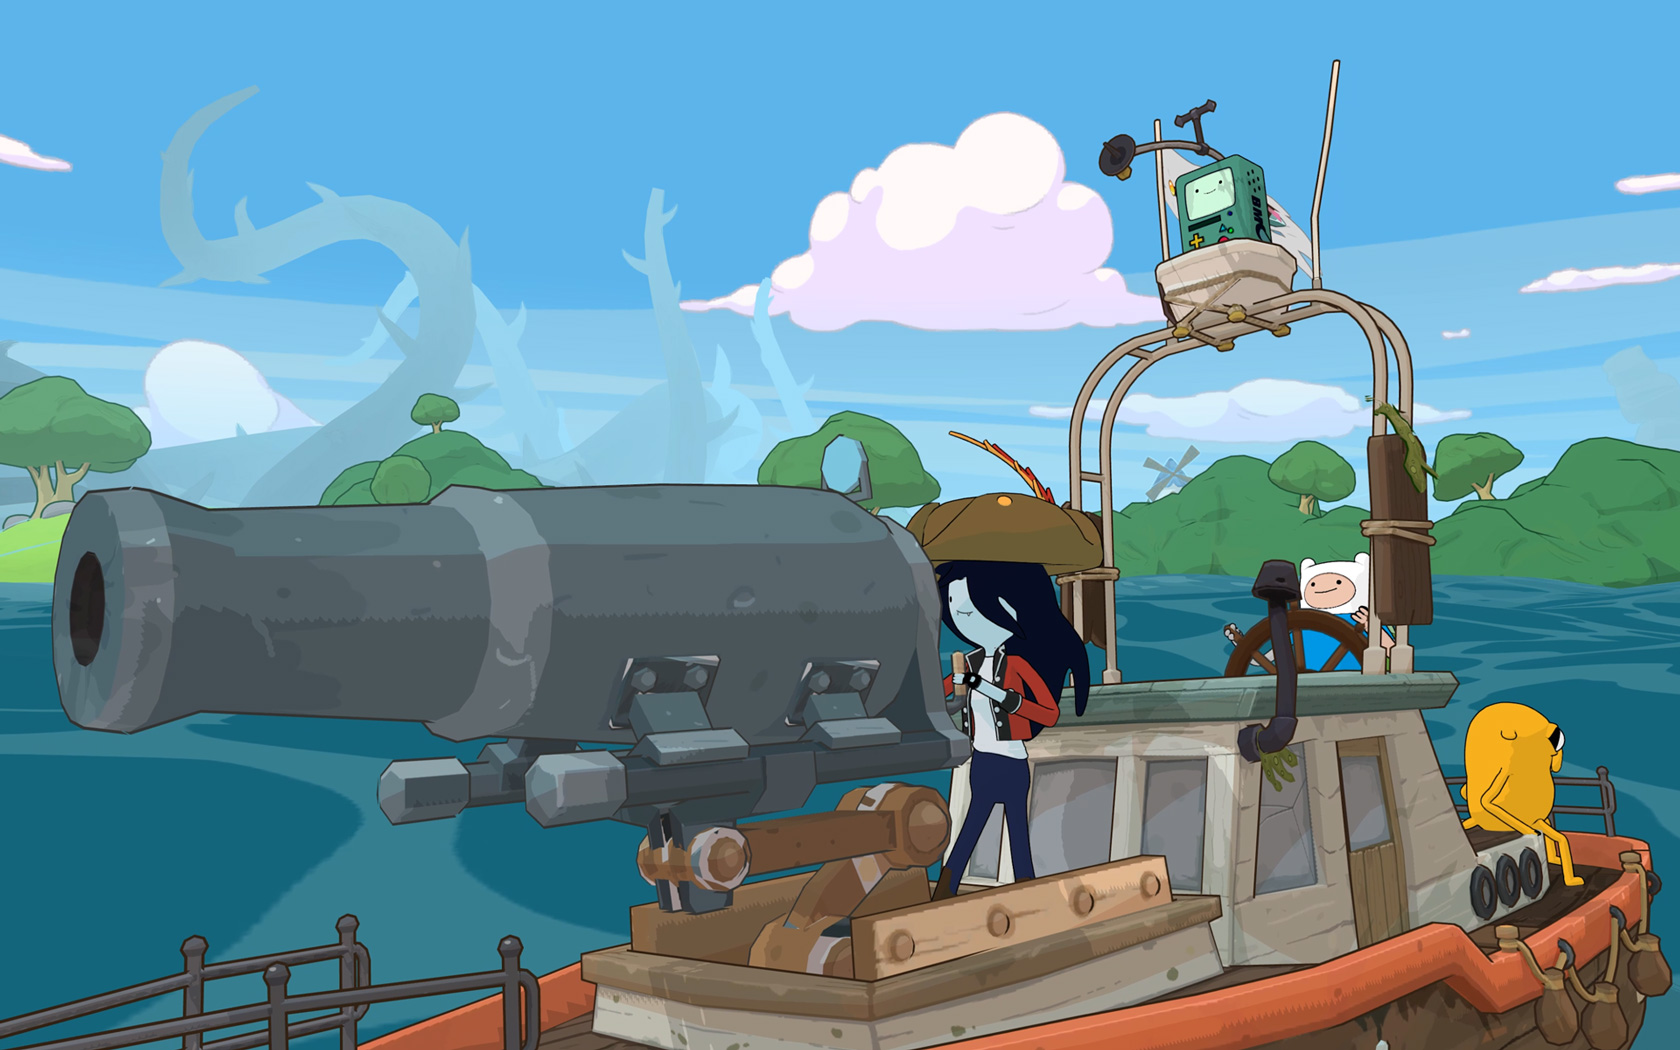 Free Adventure Time: Pirates of the Enchiridion Wallpaper in 1680x1050